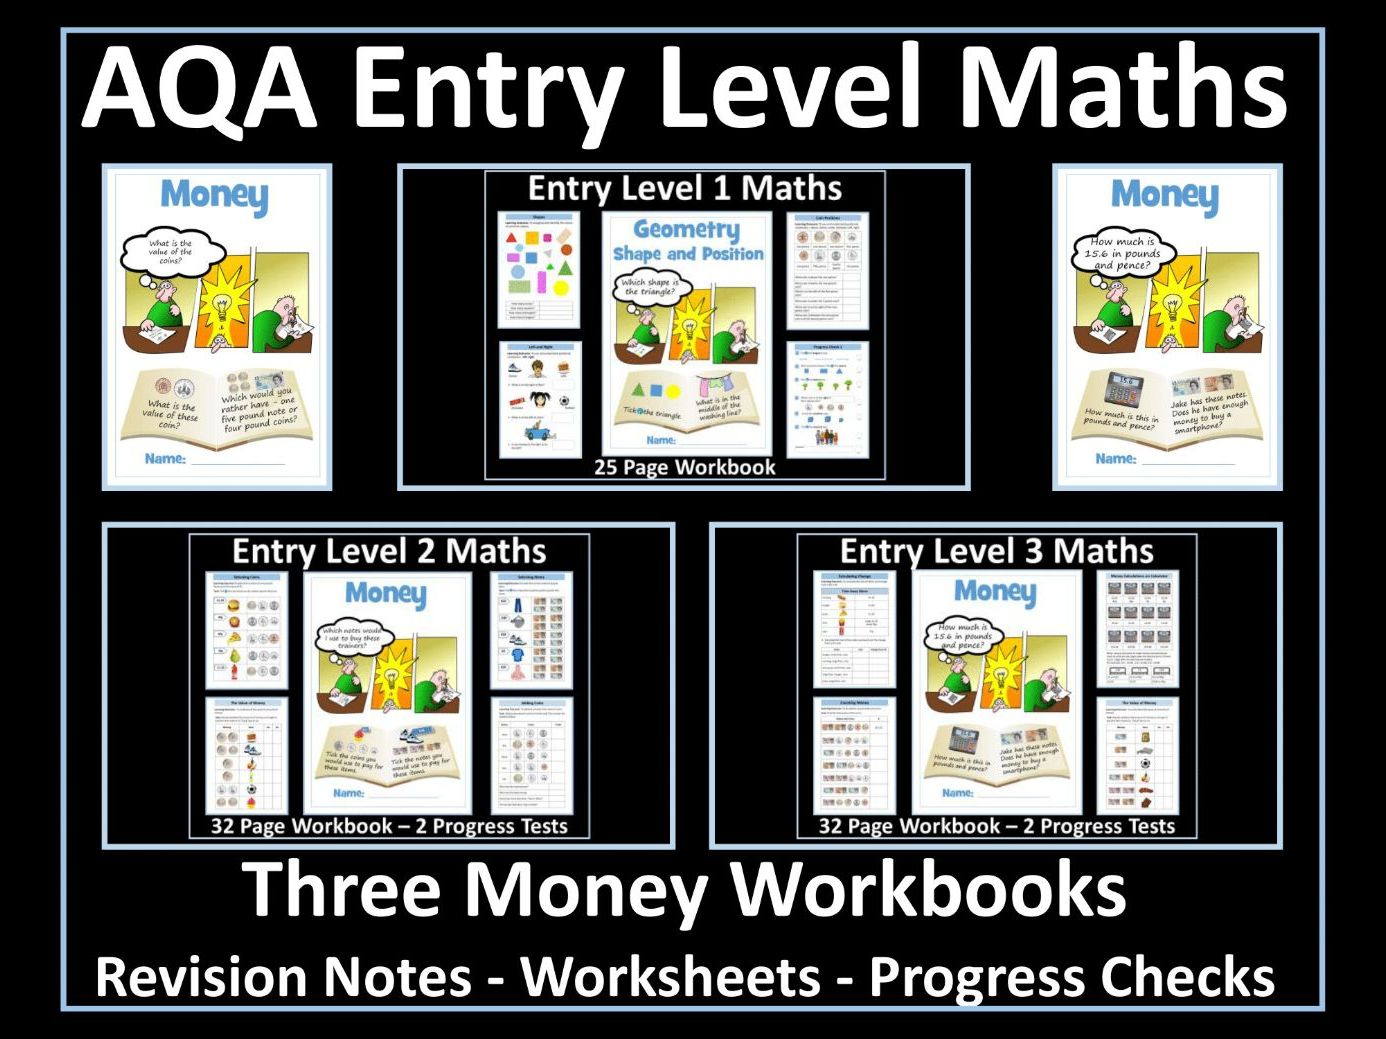 Money AQA Entry Level Maths